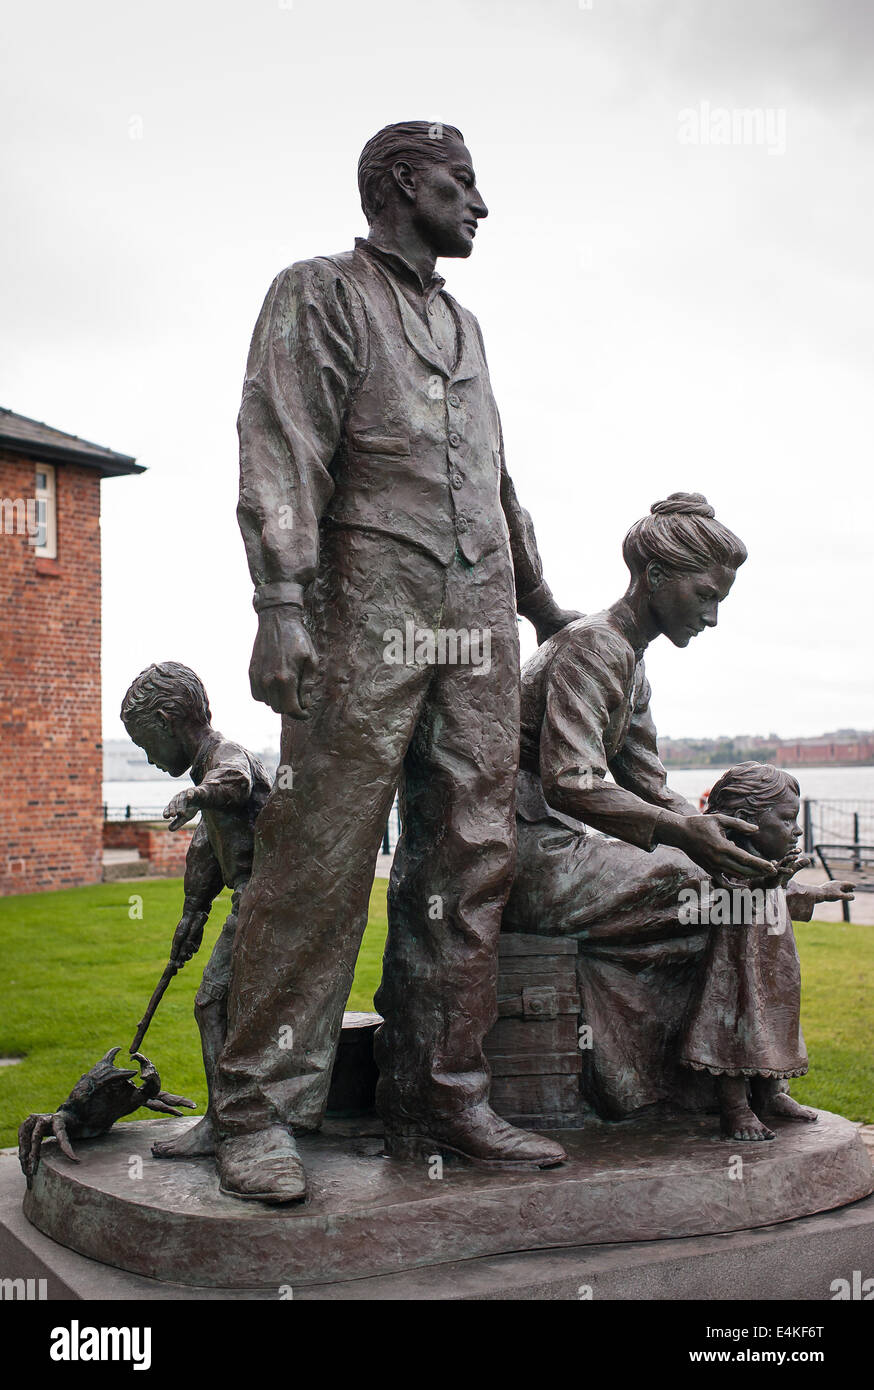 Statue in Liverpool depicting emigrant family destined for a new life overseas possibly North America - Stock Image